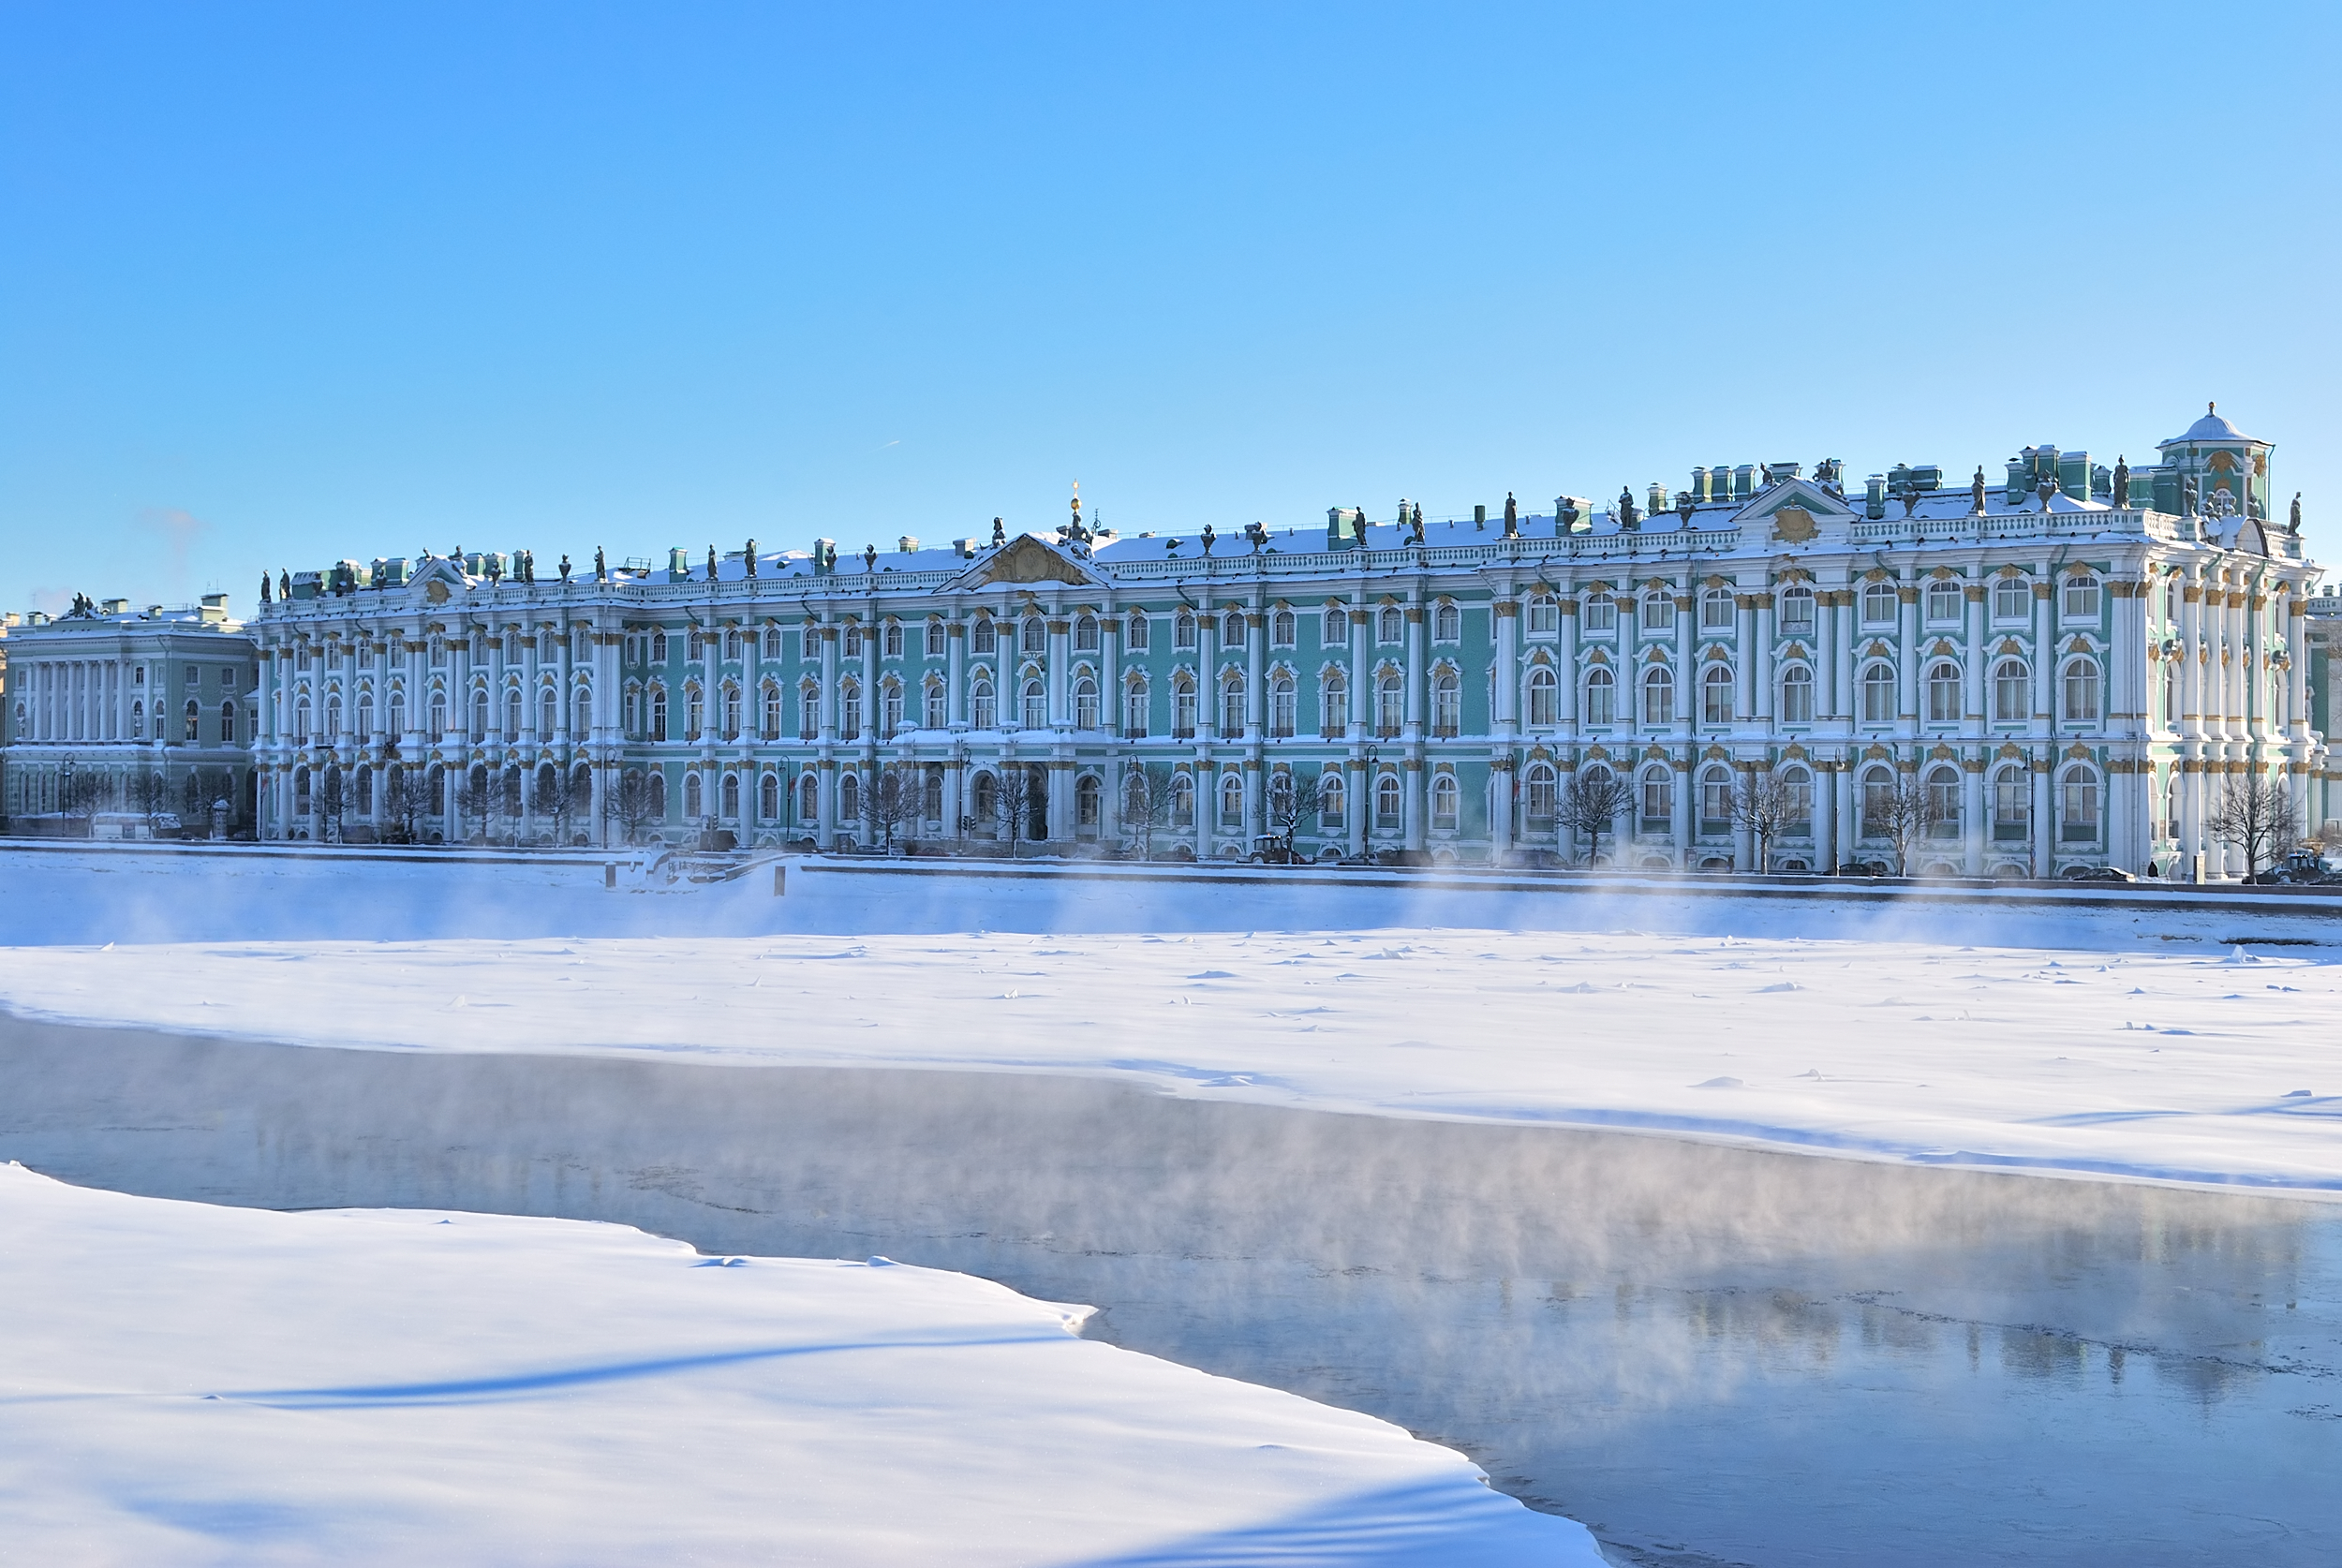 St. Petersburg Eremitage/Winterpalast